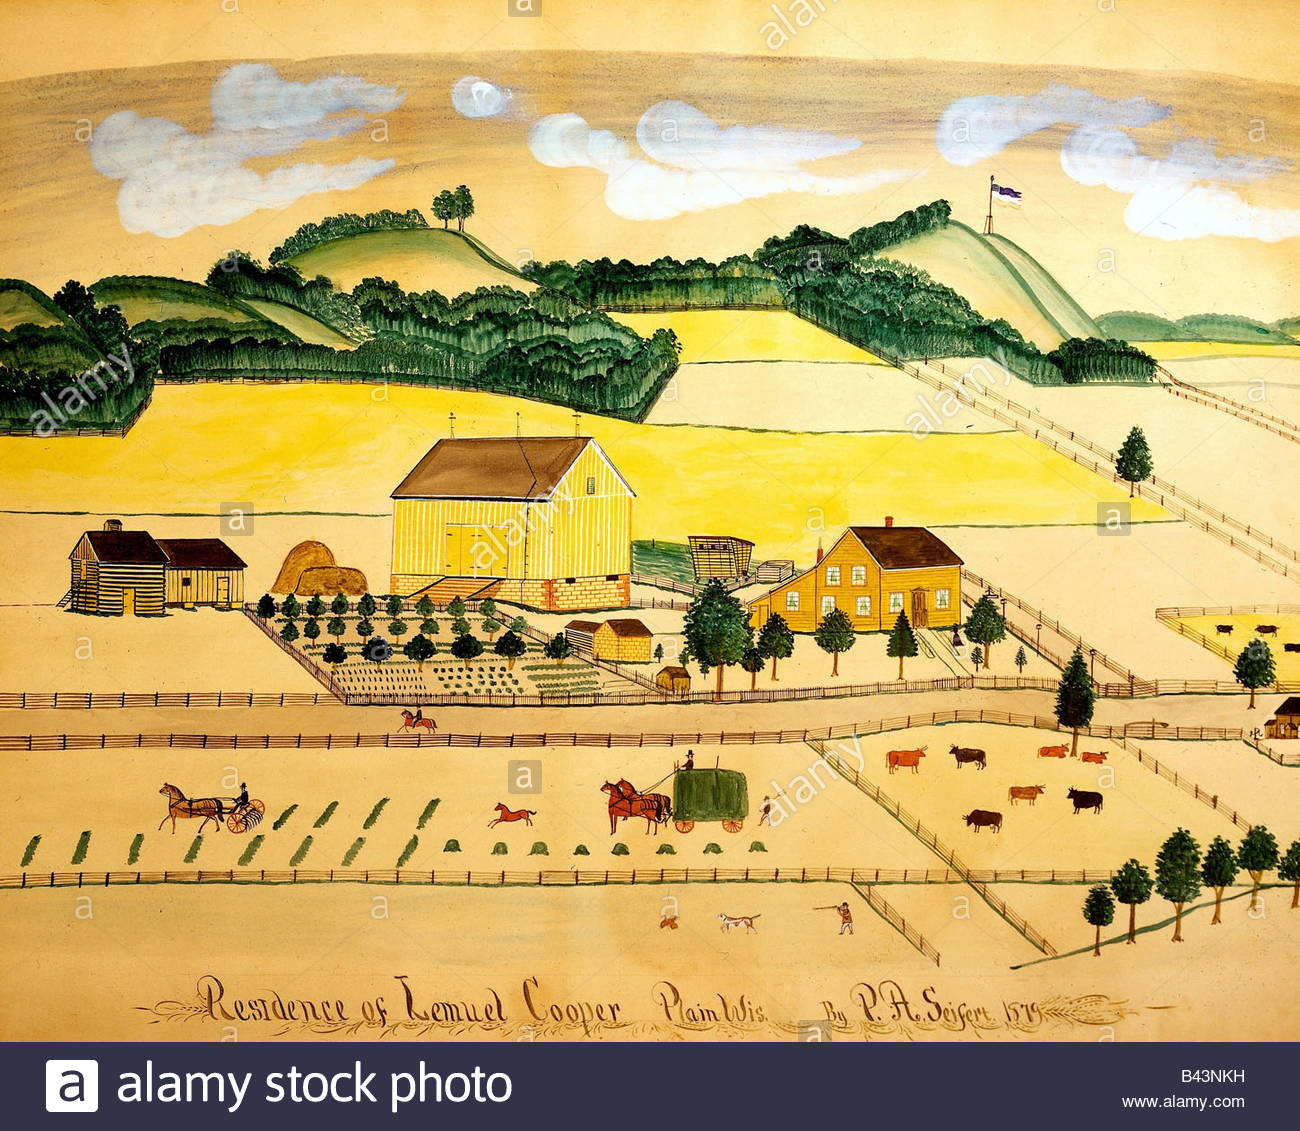 fine arts - Seifert, Paul A. (1840 - 1921), painting, 'Residence of Samuel Cooper, Plain, Wisconsin', watercolour, - Stock Image